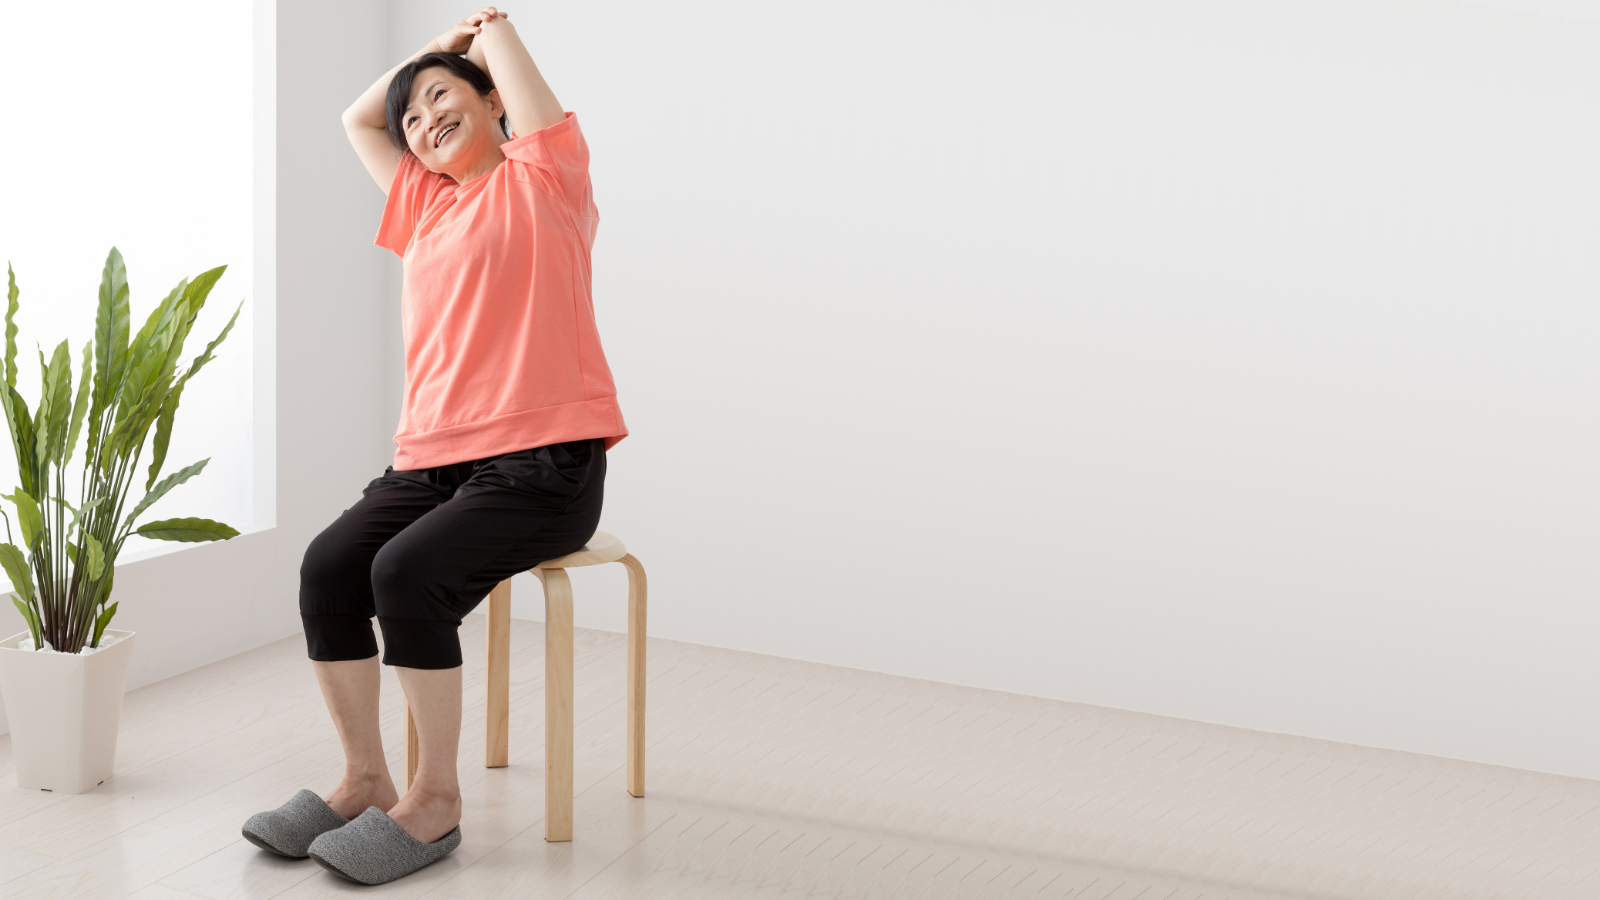 Yoga student experiencing the benefits of practicing Seated Side Bend Pose for an energy boost